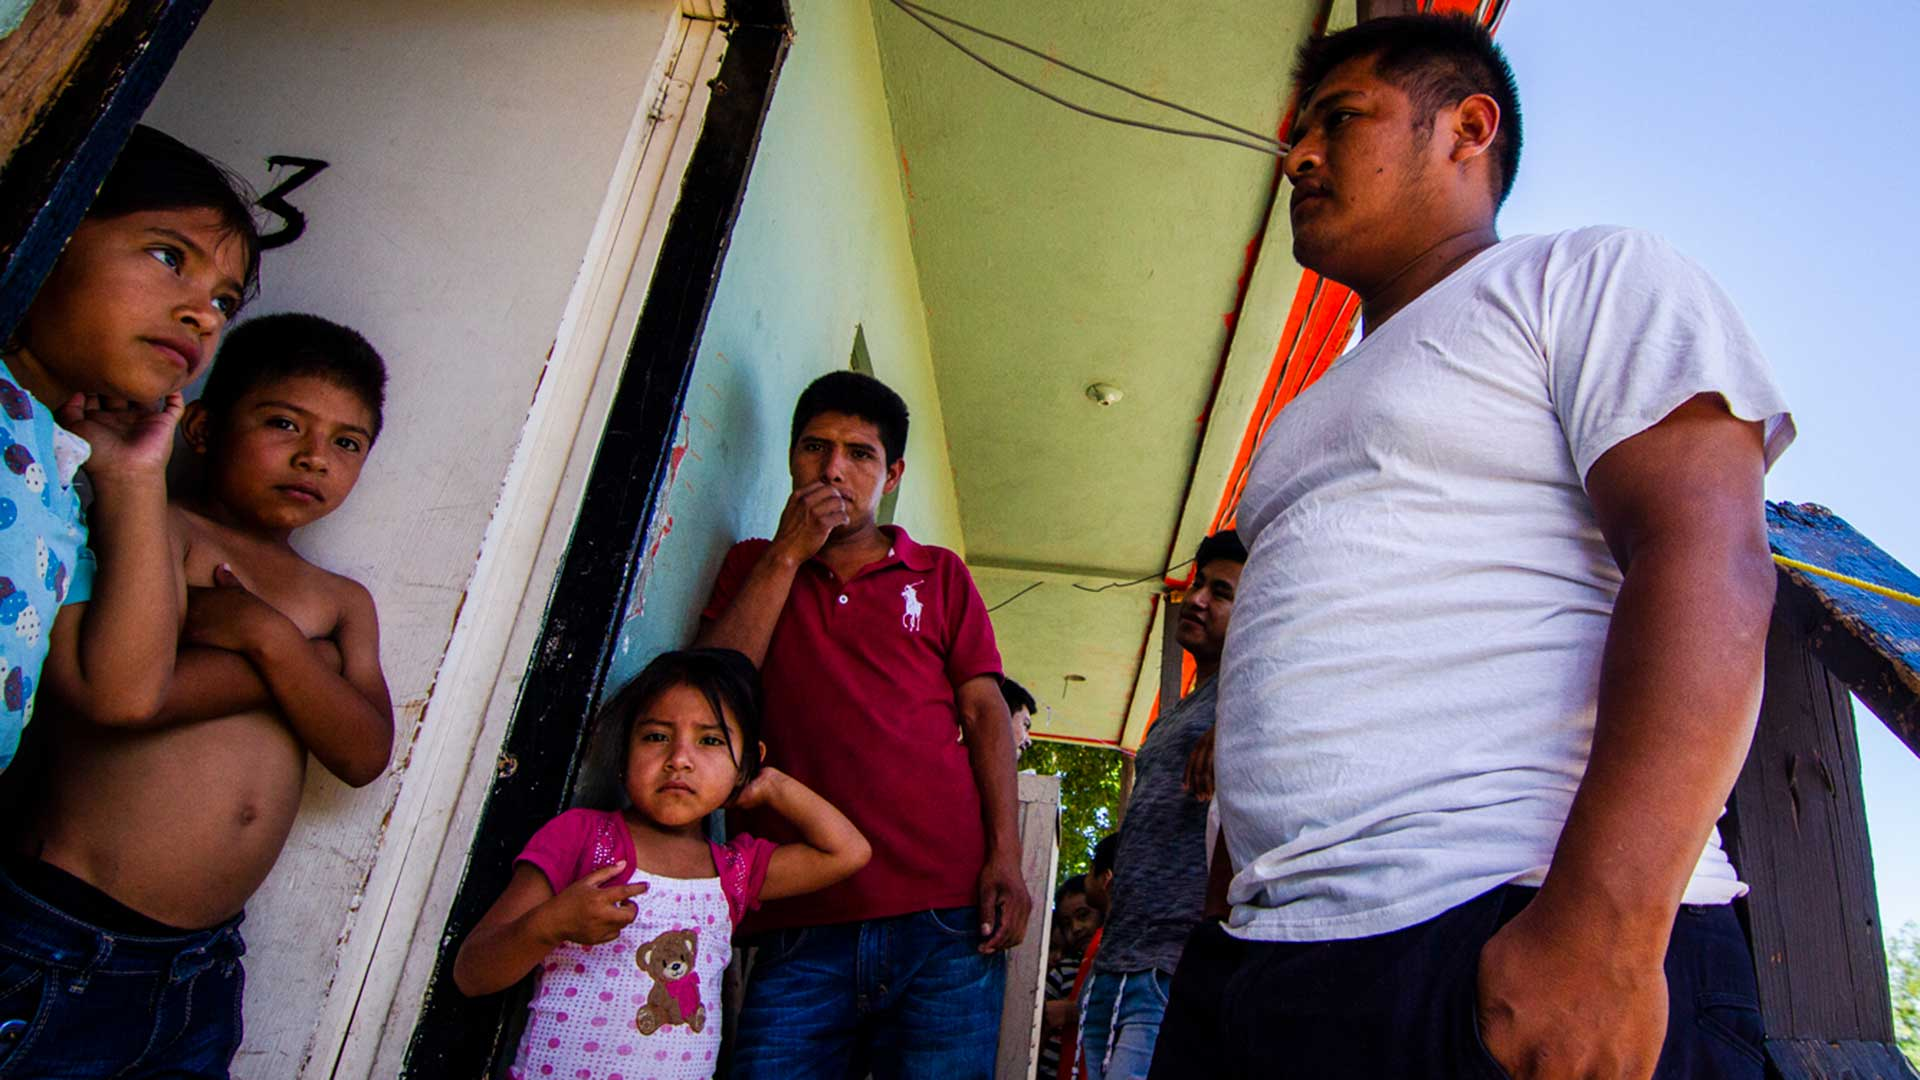 Several families of asylum seekers from Guerrero are splitting a few apartments on the border.